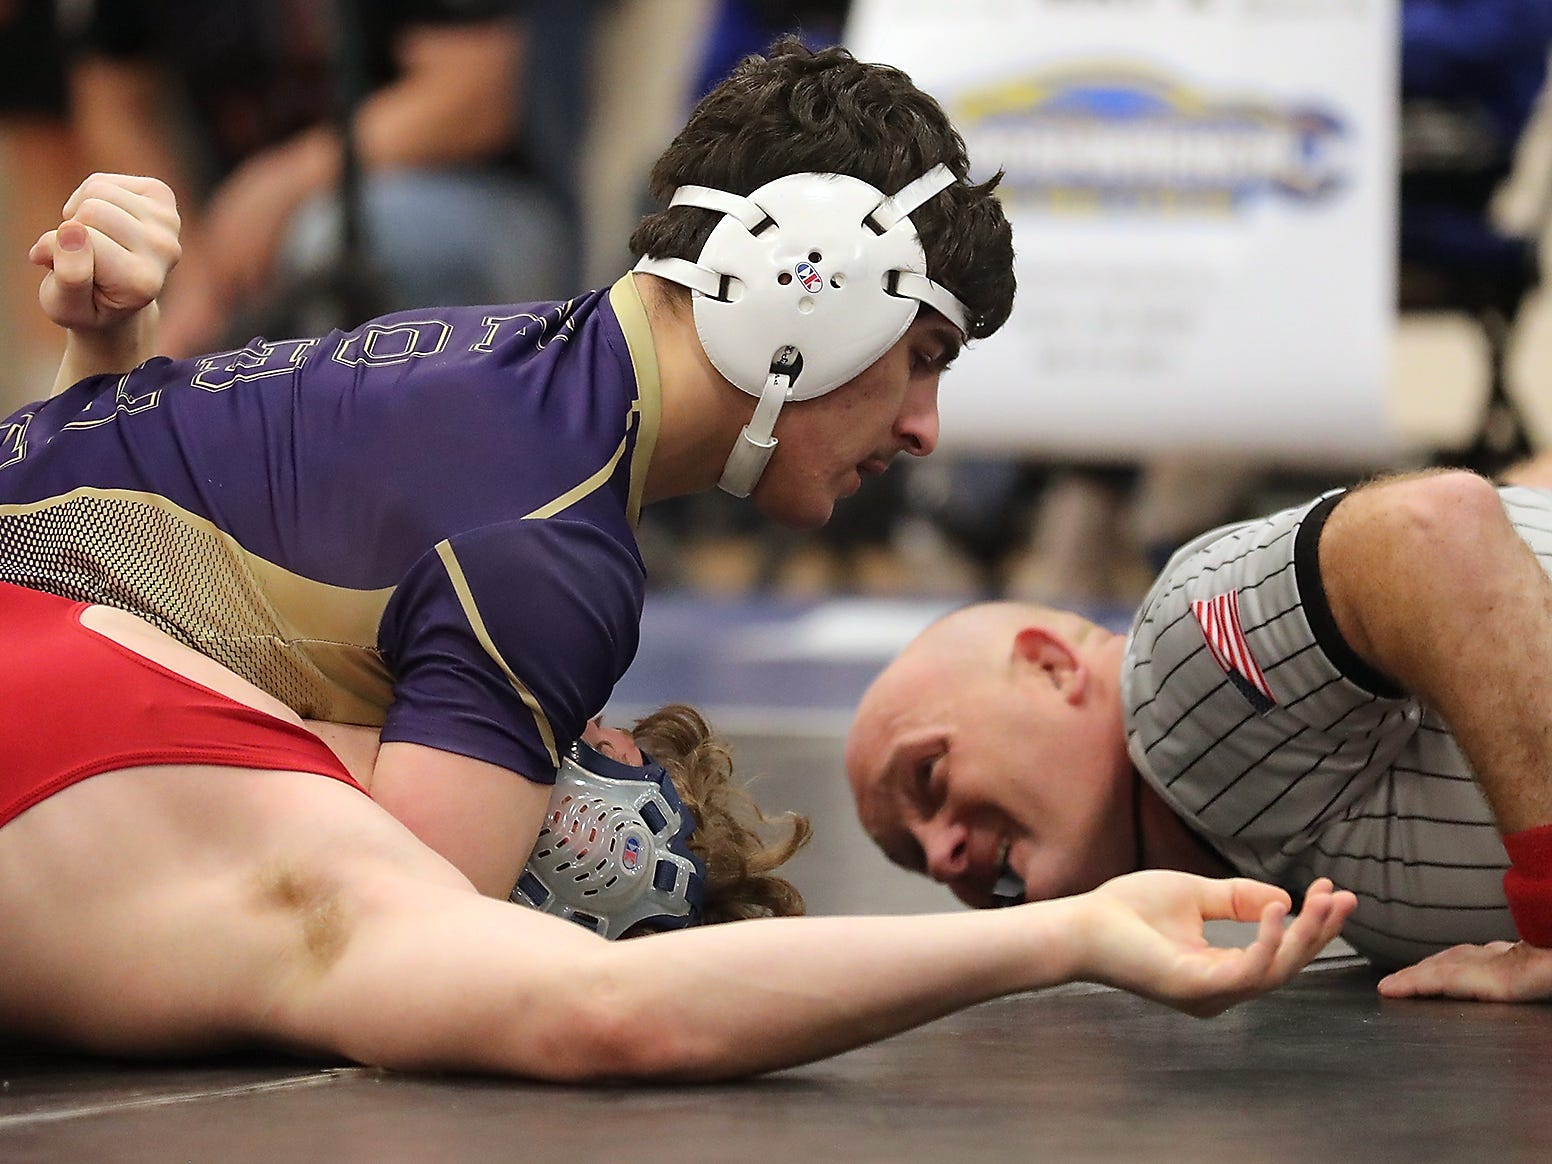 North Kitsap's Nouh Hammou (top) pins Port Townsend's Kyle Caldwell in the finals for the 195-pound bracket at the North Mason Classic in Belfair on Saturday, December 22, 2018.